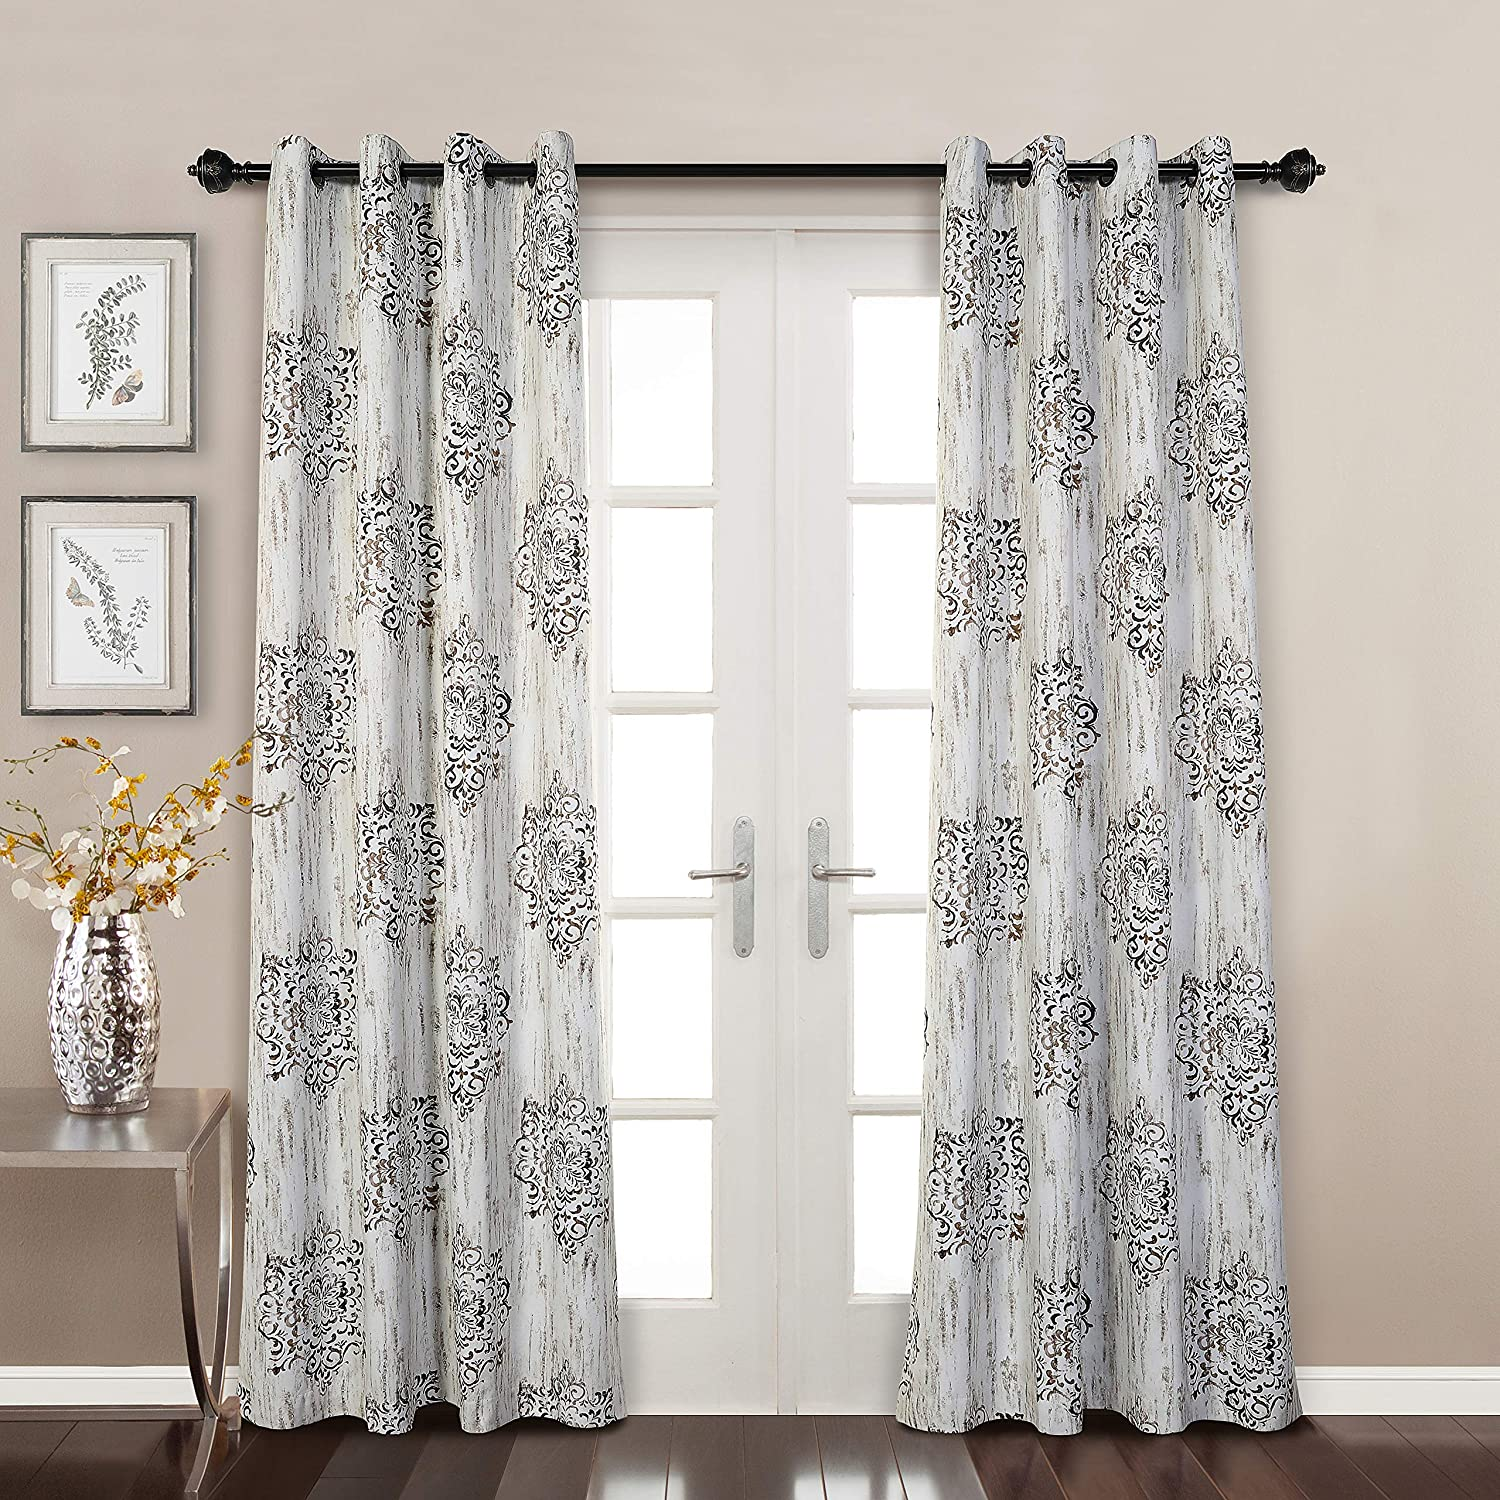 MYSKY HOME Dahlia Flower Damask Style Fashion Design Print Grommet Top Thermal Insulated Blackout Curtains for Living Room 52 by 95 inch, Cafe (1 Panel)